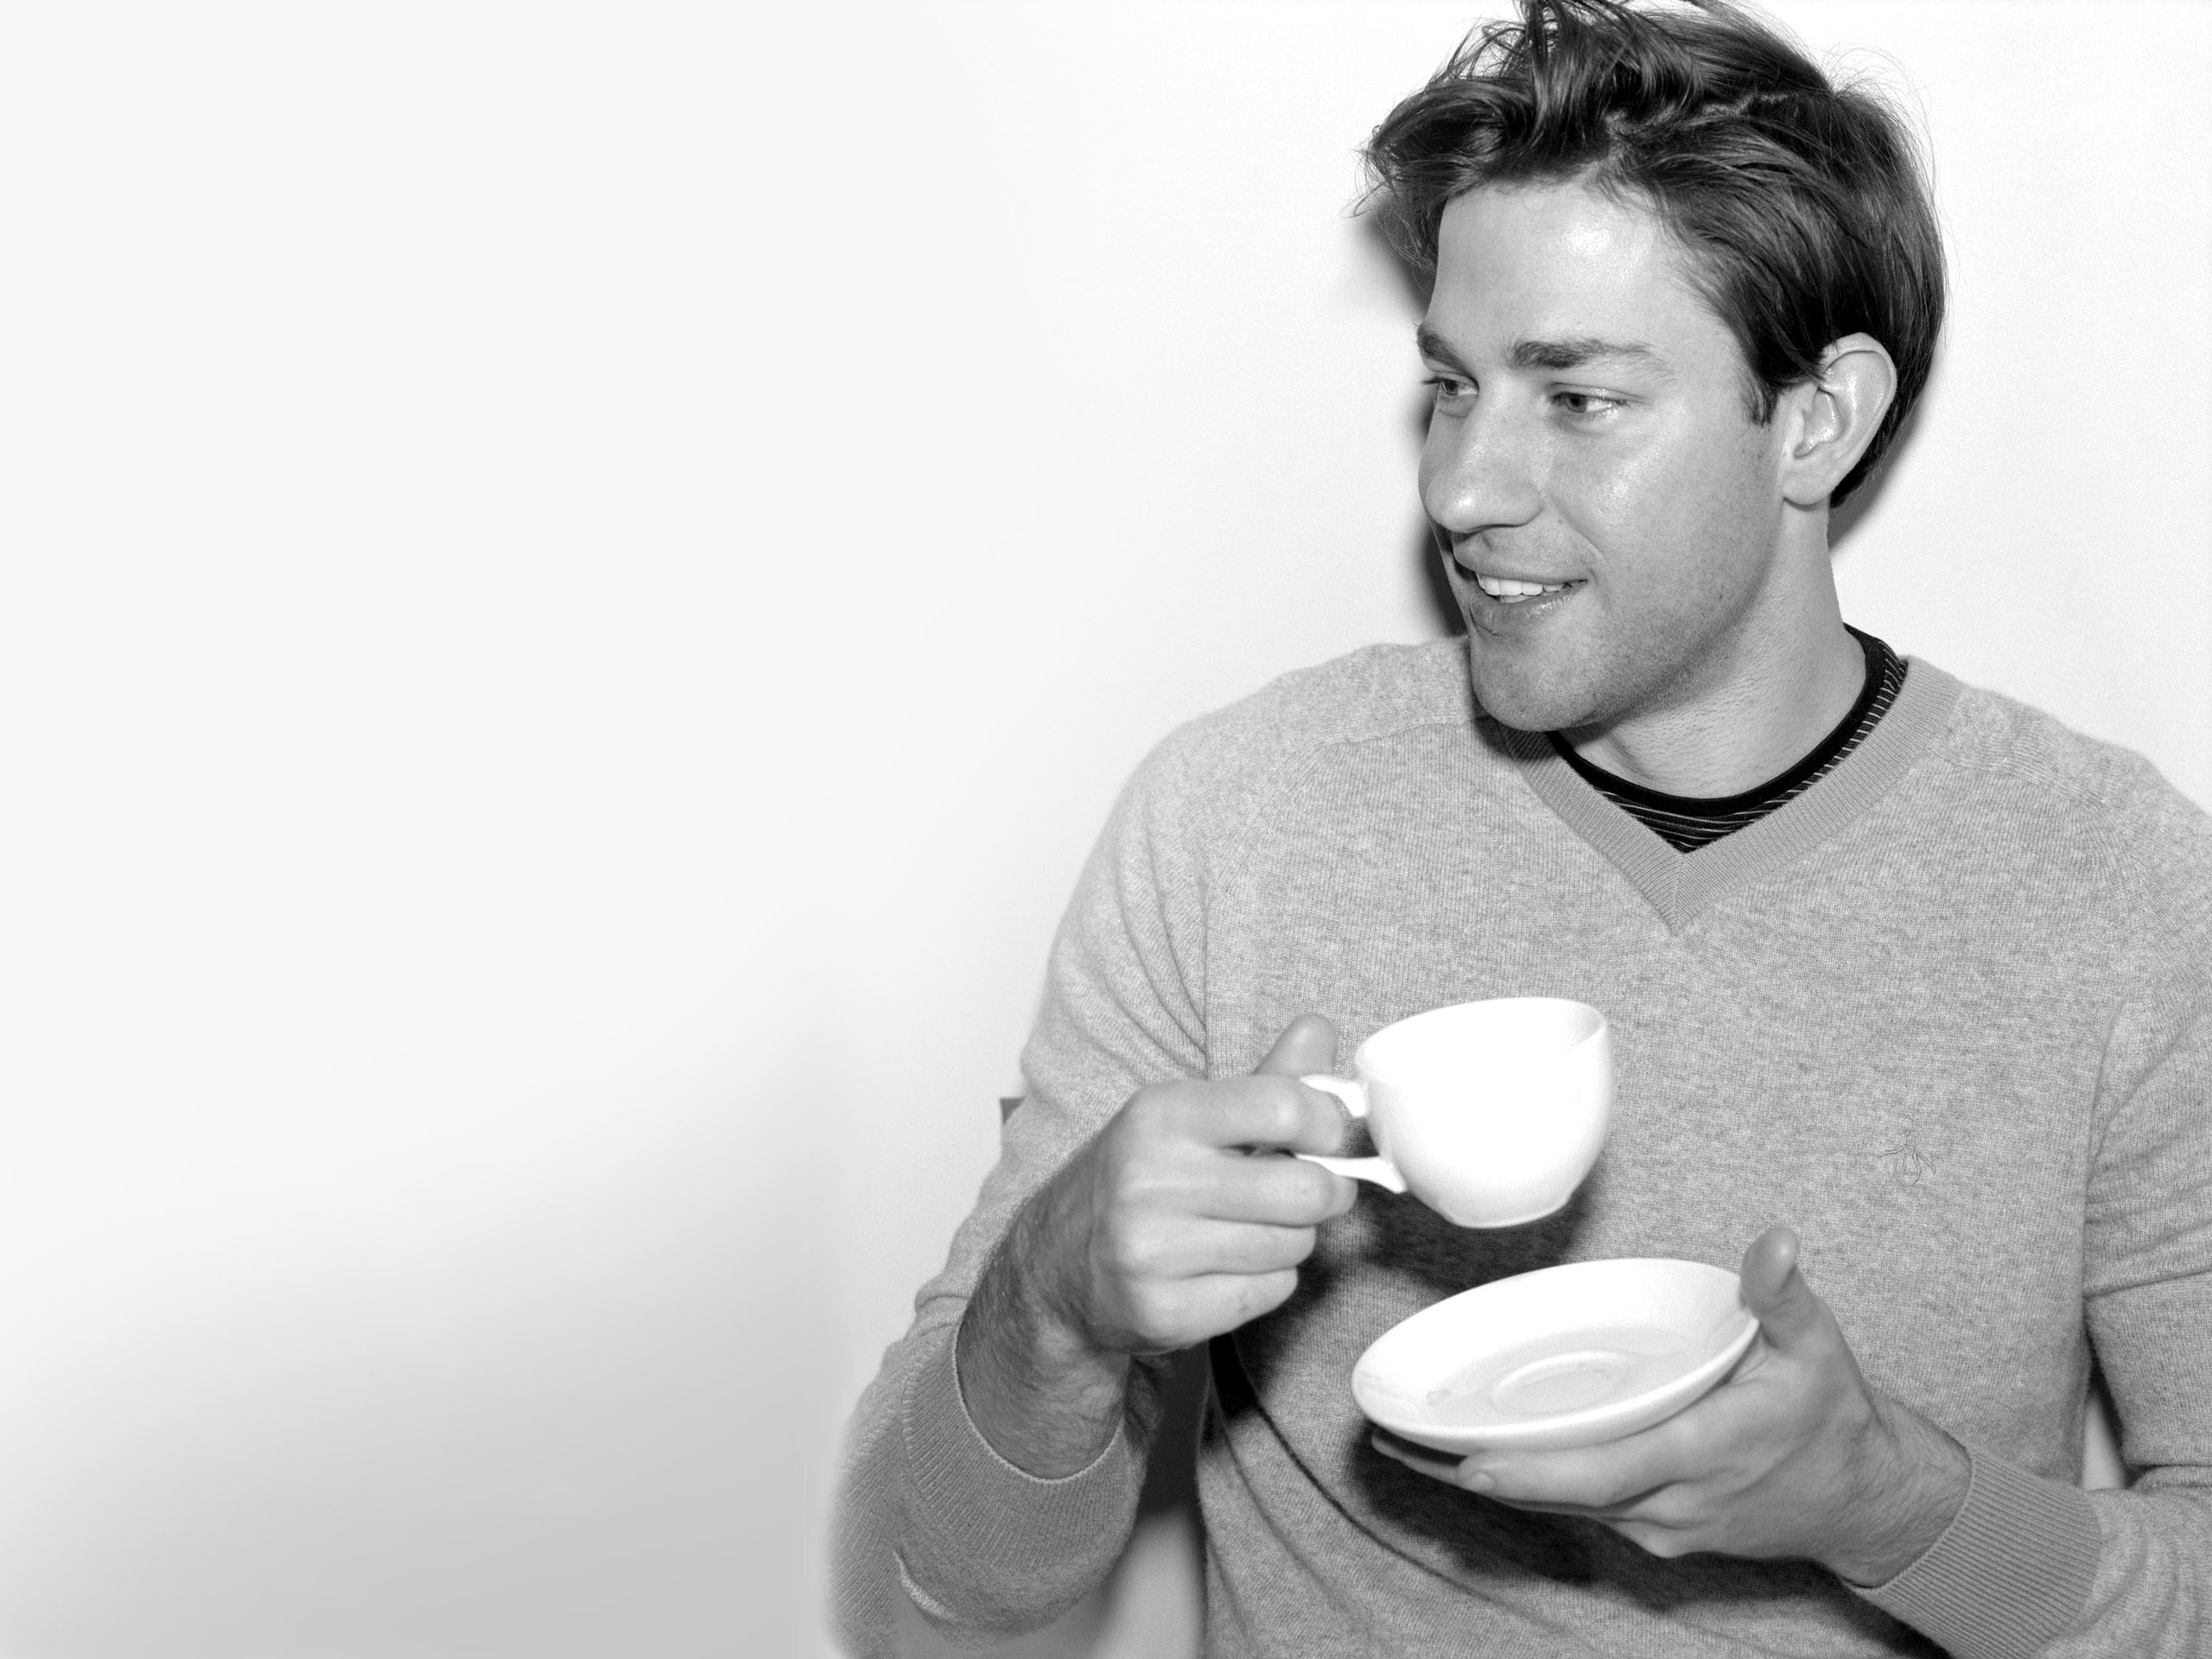 monochrome john krasinski wallpaper 54298